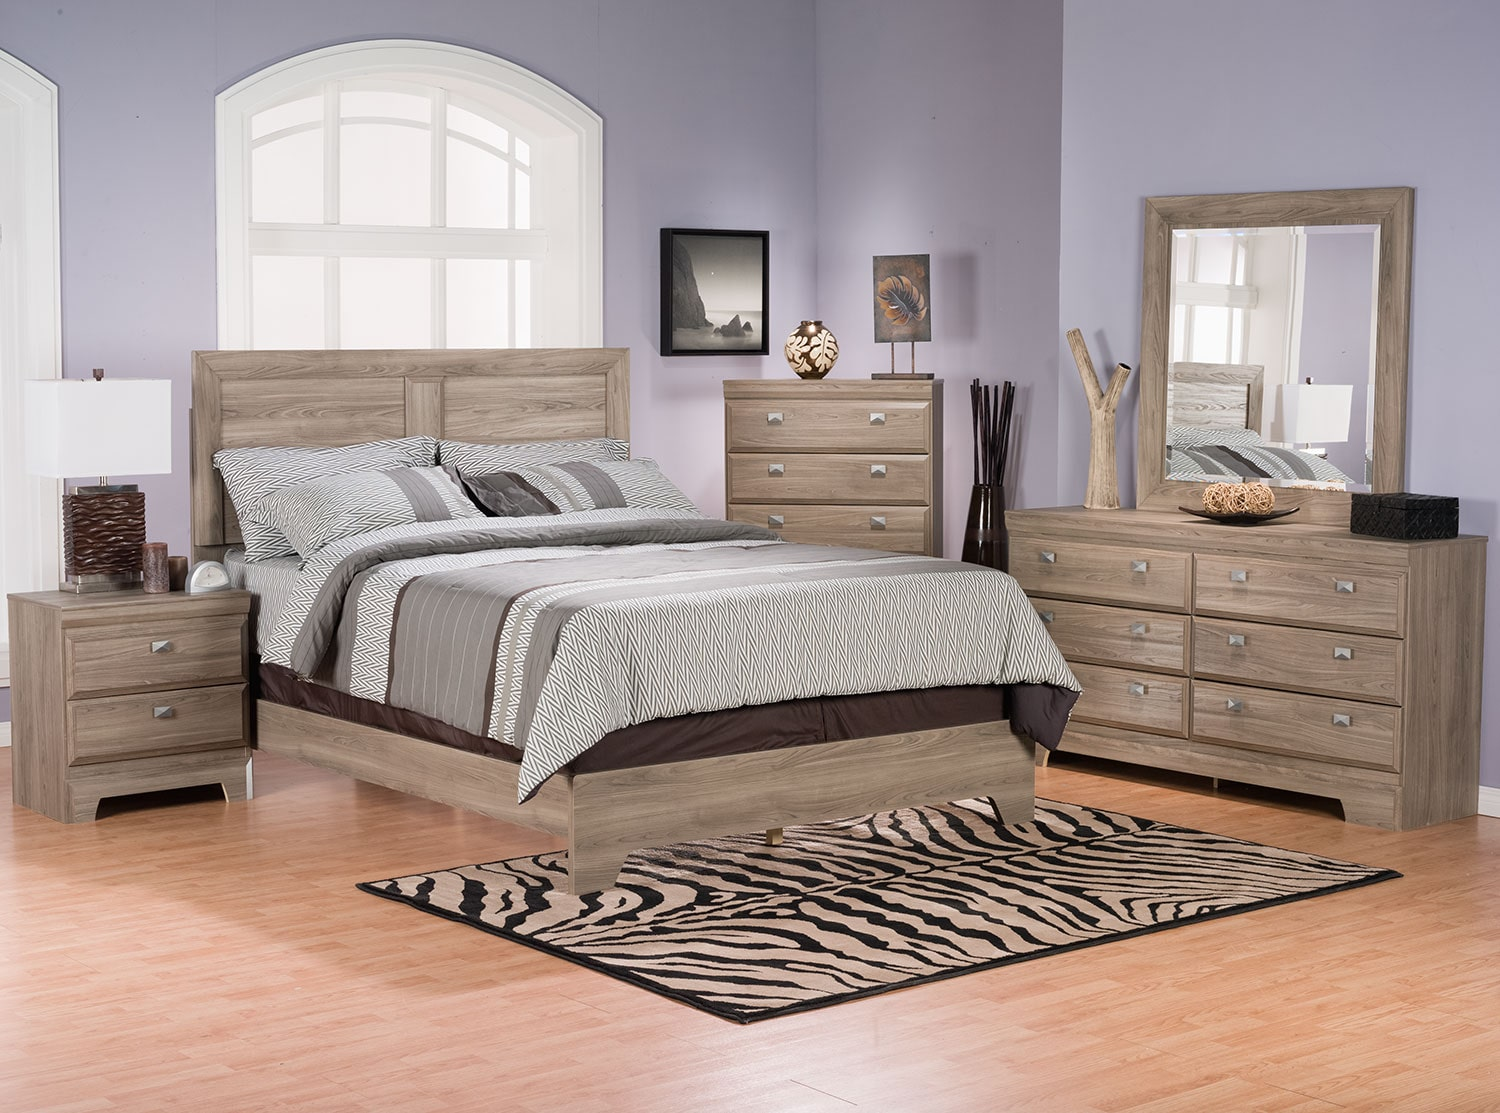 Bedroom Furniture - Yorkdale Light 8-Piece King Bedroom Package